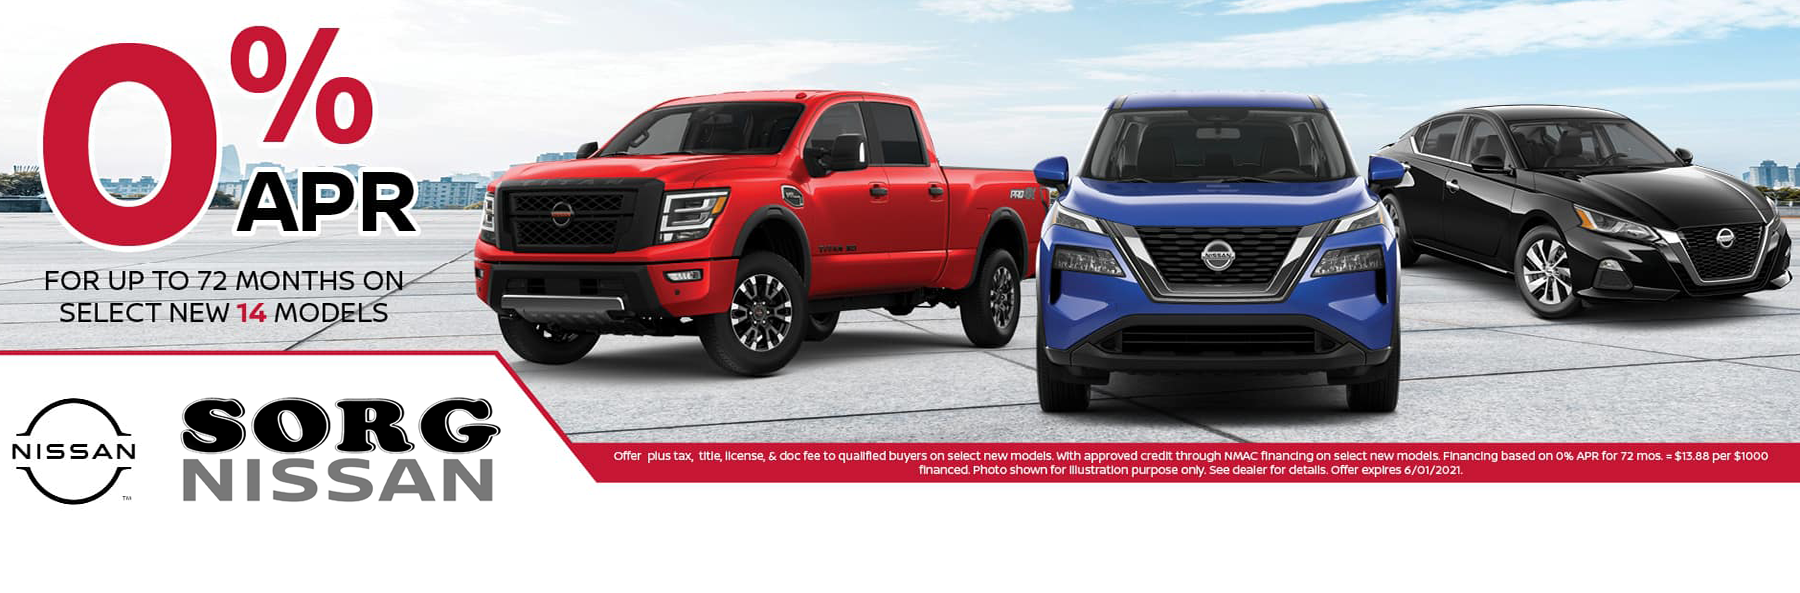 0% financing for up to 72 months on select Nissan models